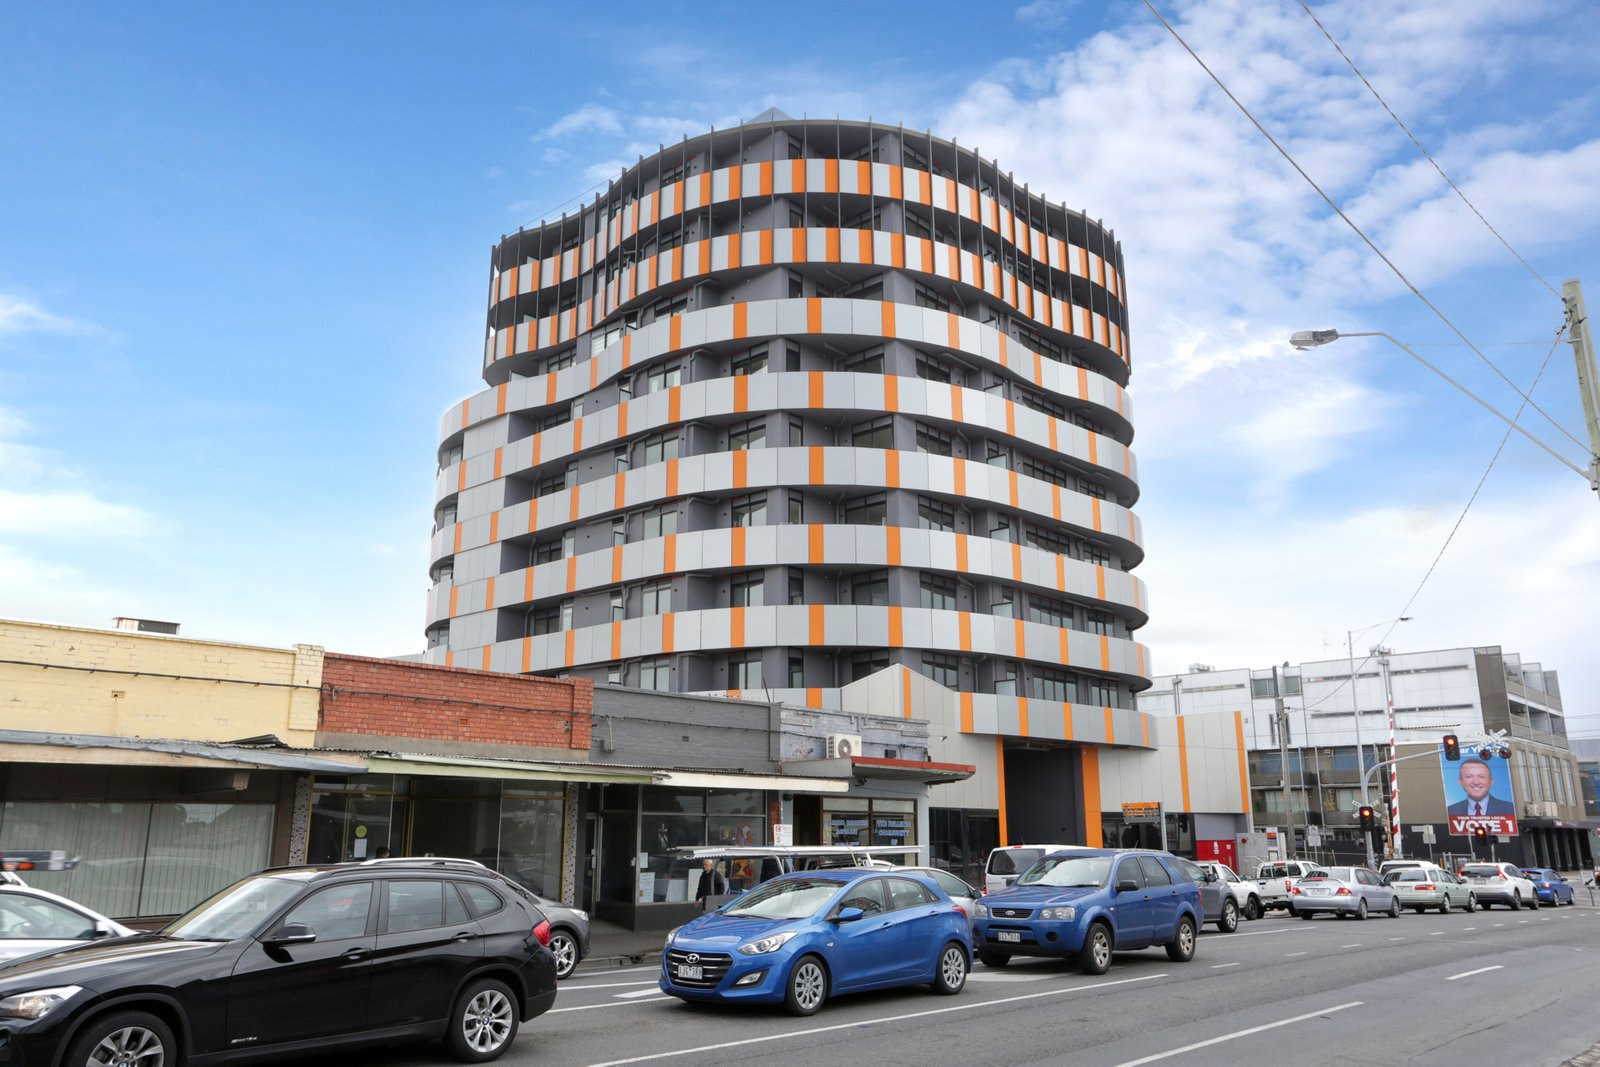 503/146 Bell Street, Coburg, VIC, 3058 image 1